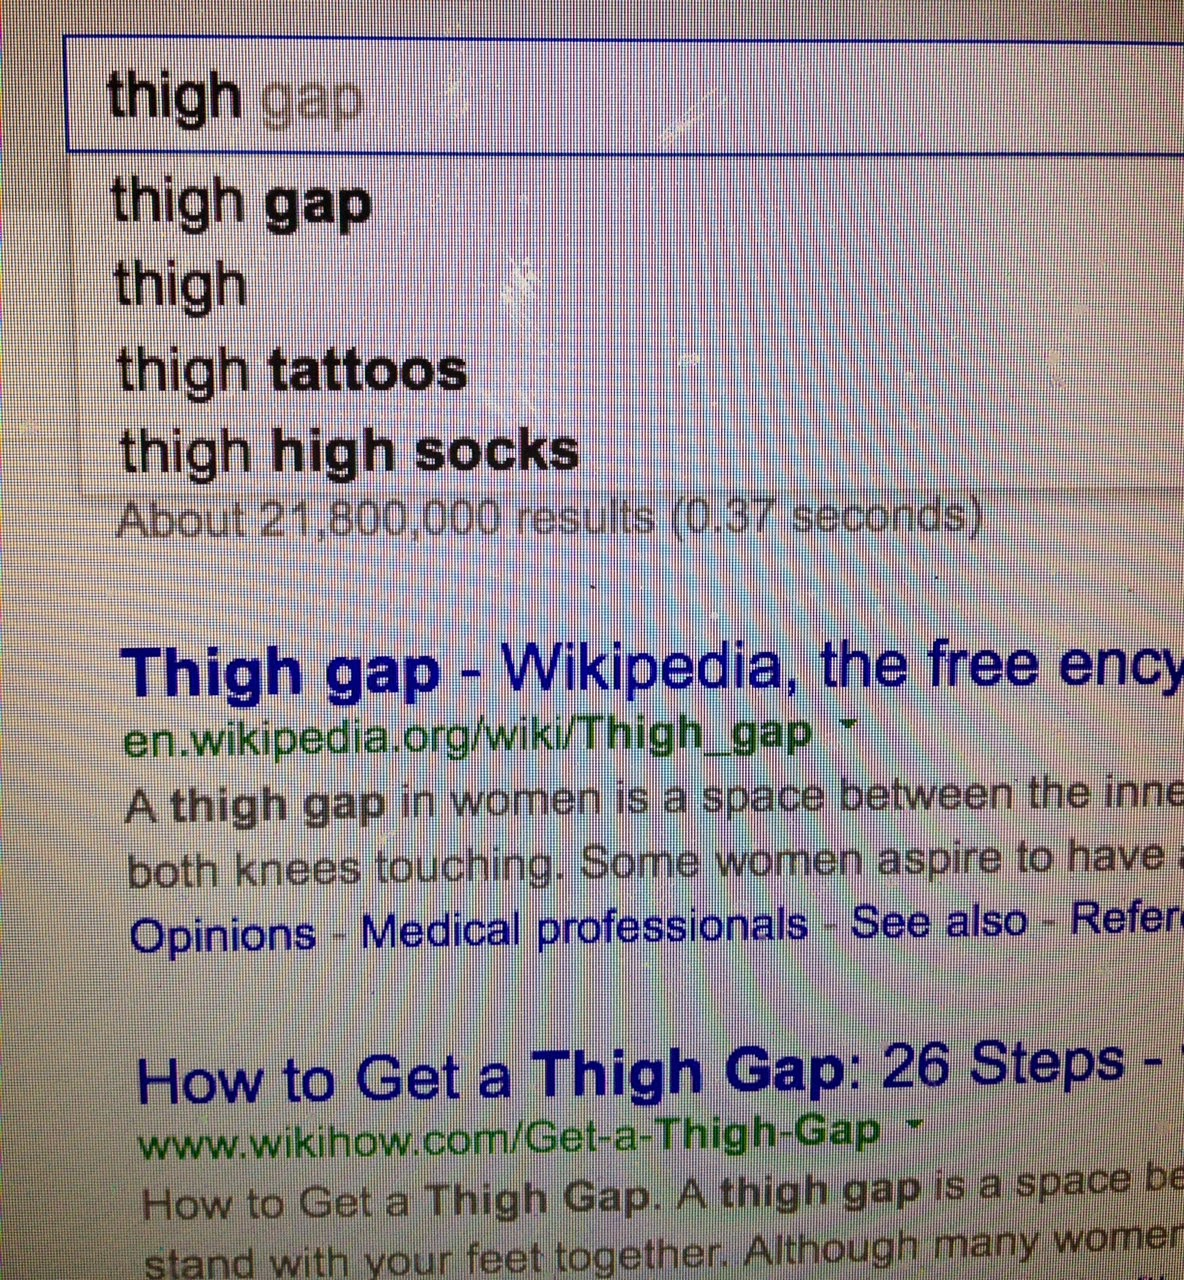 This Thigh Gap Thing Is Bonkers Of Sugar Baited Words